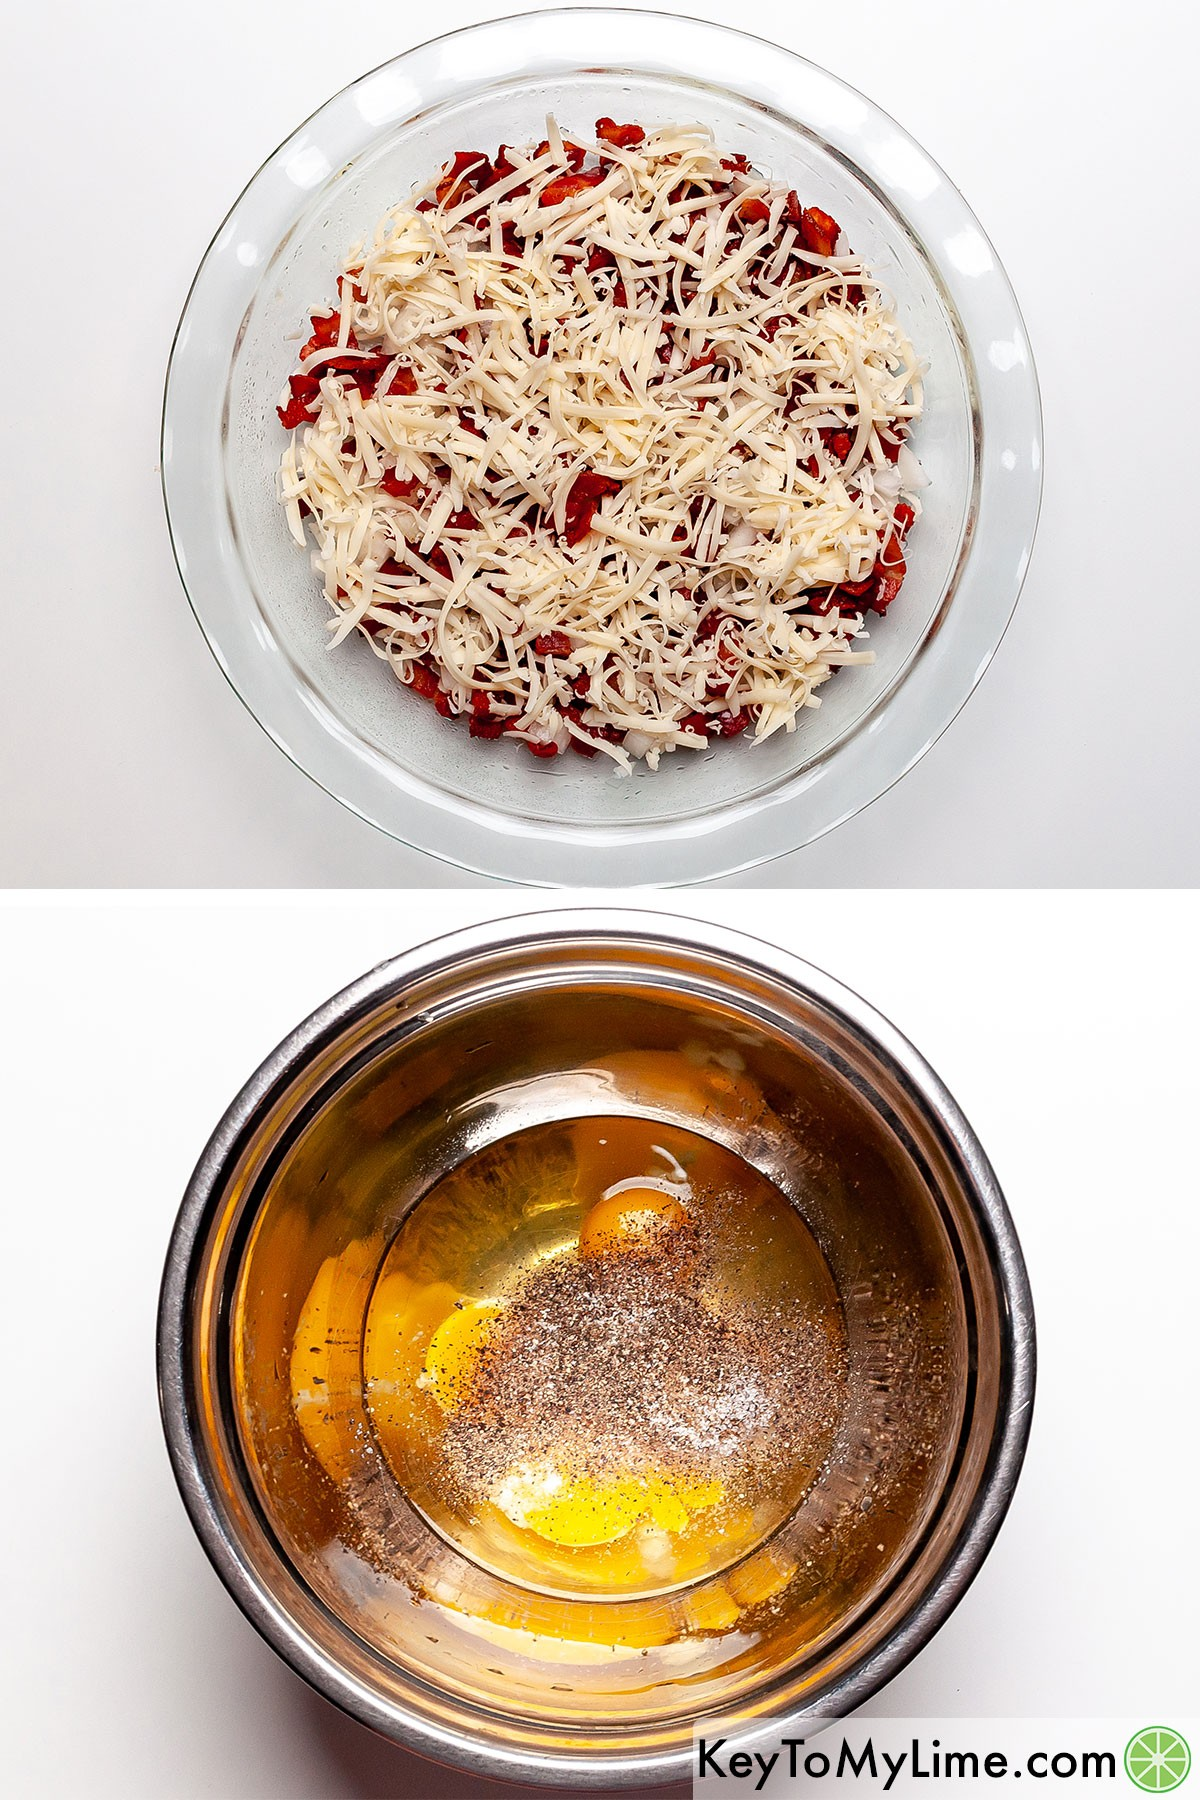 A process collage showing layering bacon and cheese in a pie dish, then mixing eggs with seasonings.